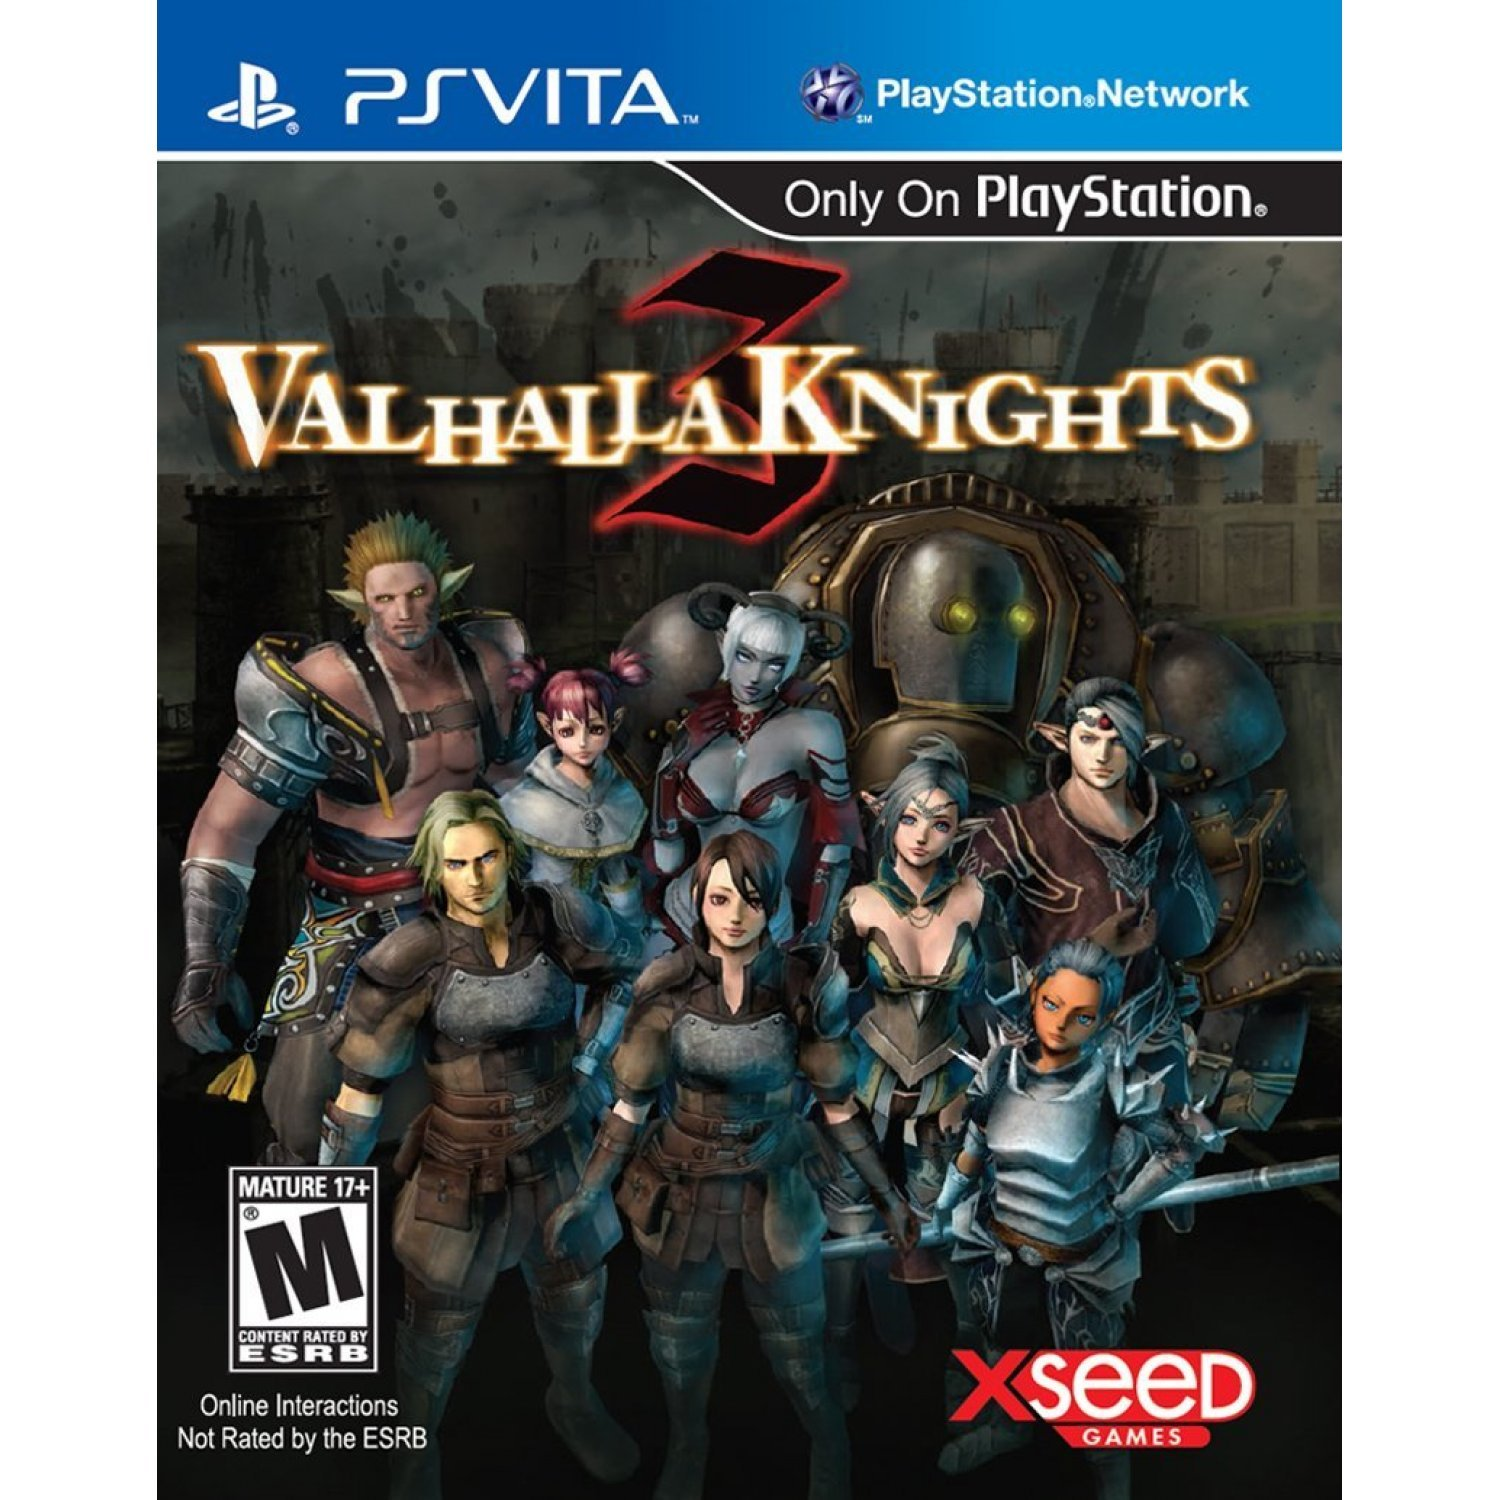 valhalla knights 3 dating Extreme gamer canada - valhalla knights psp (playstation portable) review xseed rpg april 2007 reminiscing of an mmorpg, you can custom build your own team to tackle the many challenges that await.